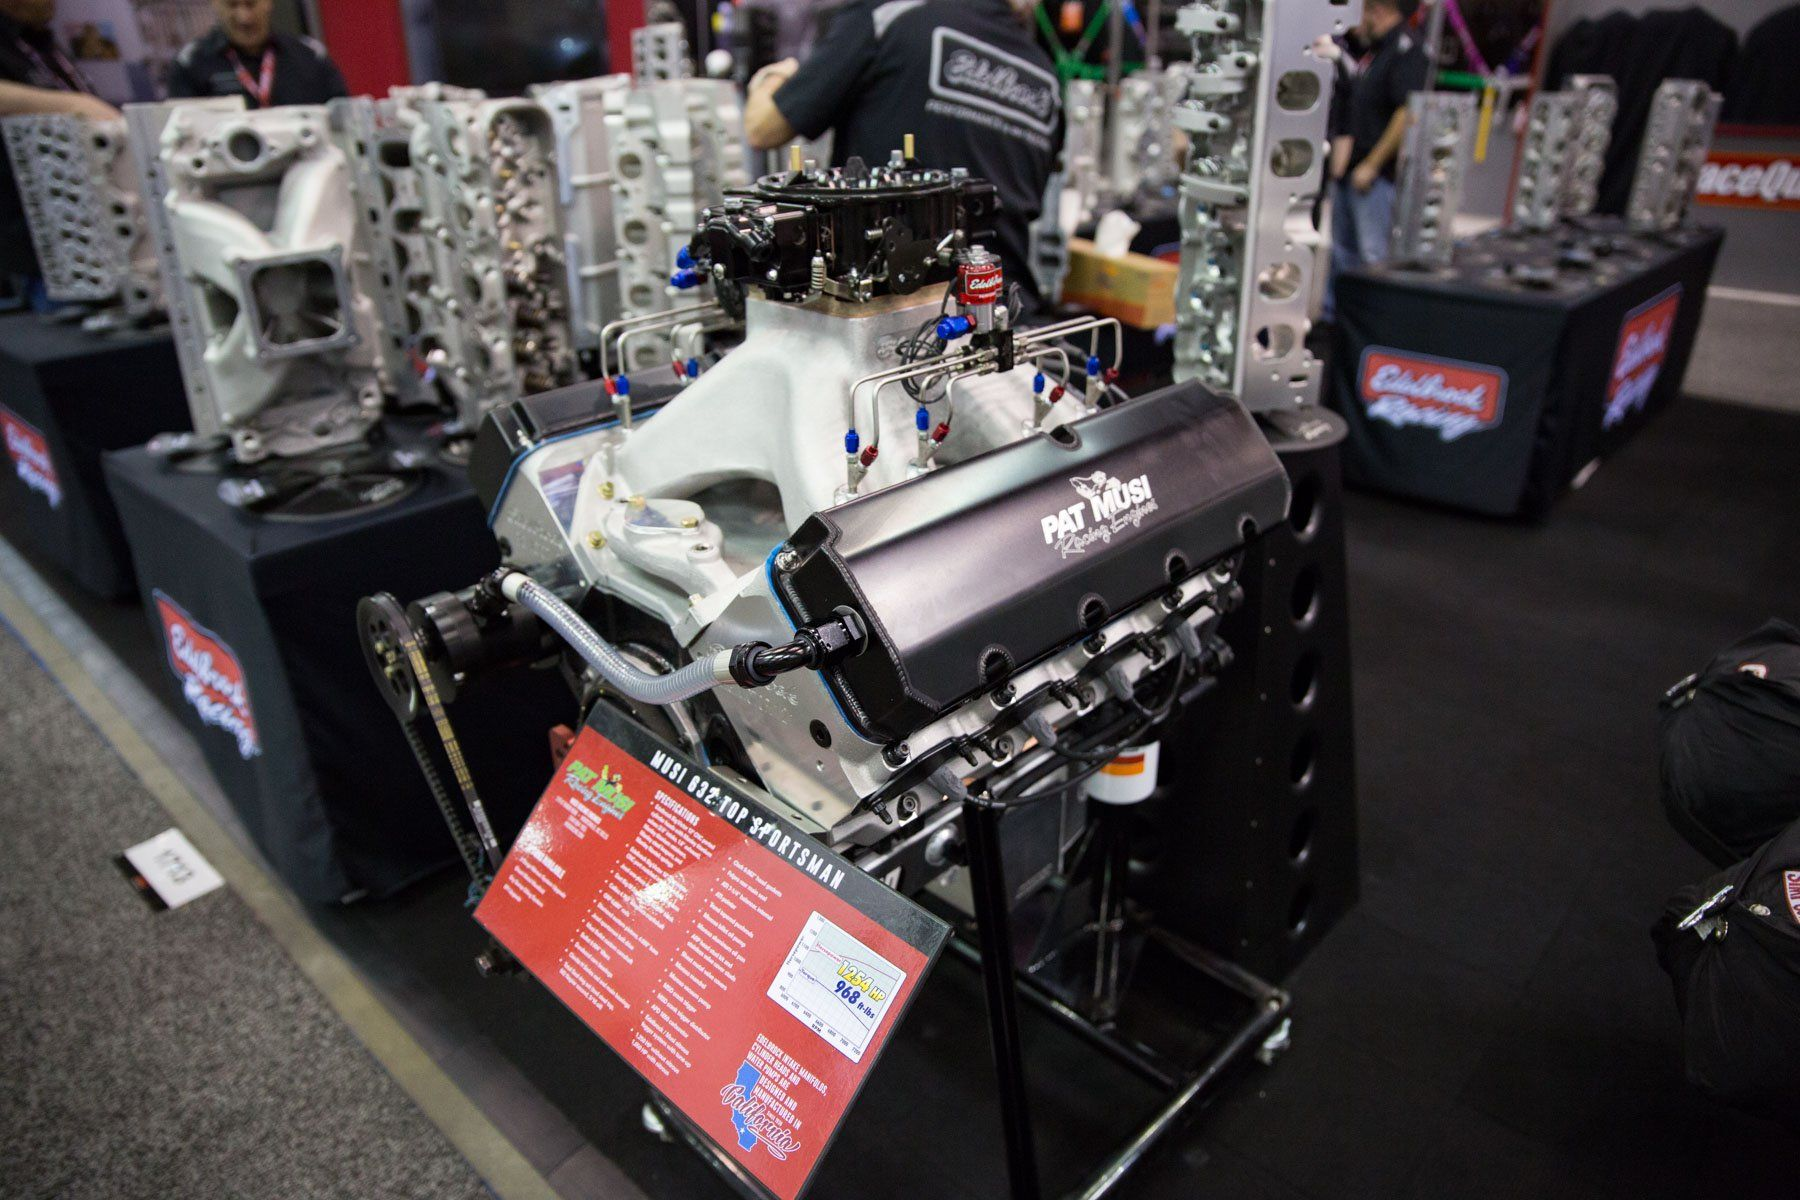 The Musi 632 from Edelbrock is designed to bring reliable